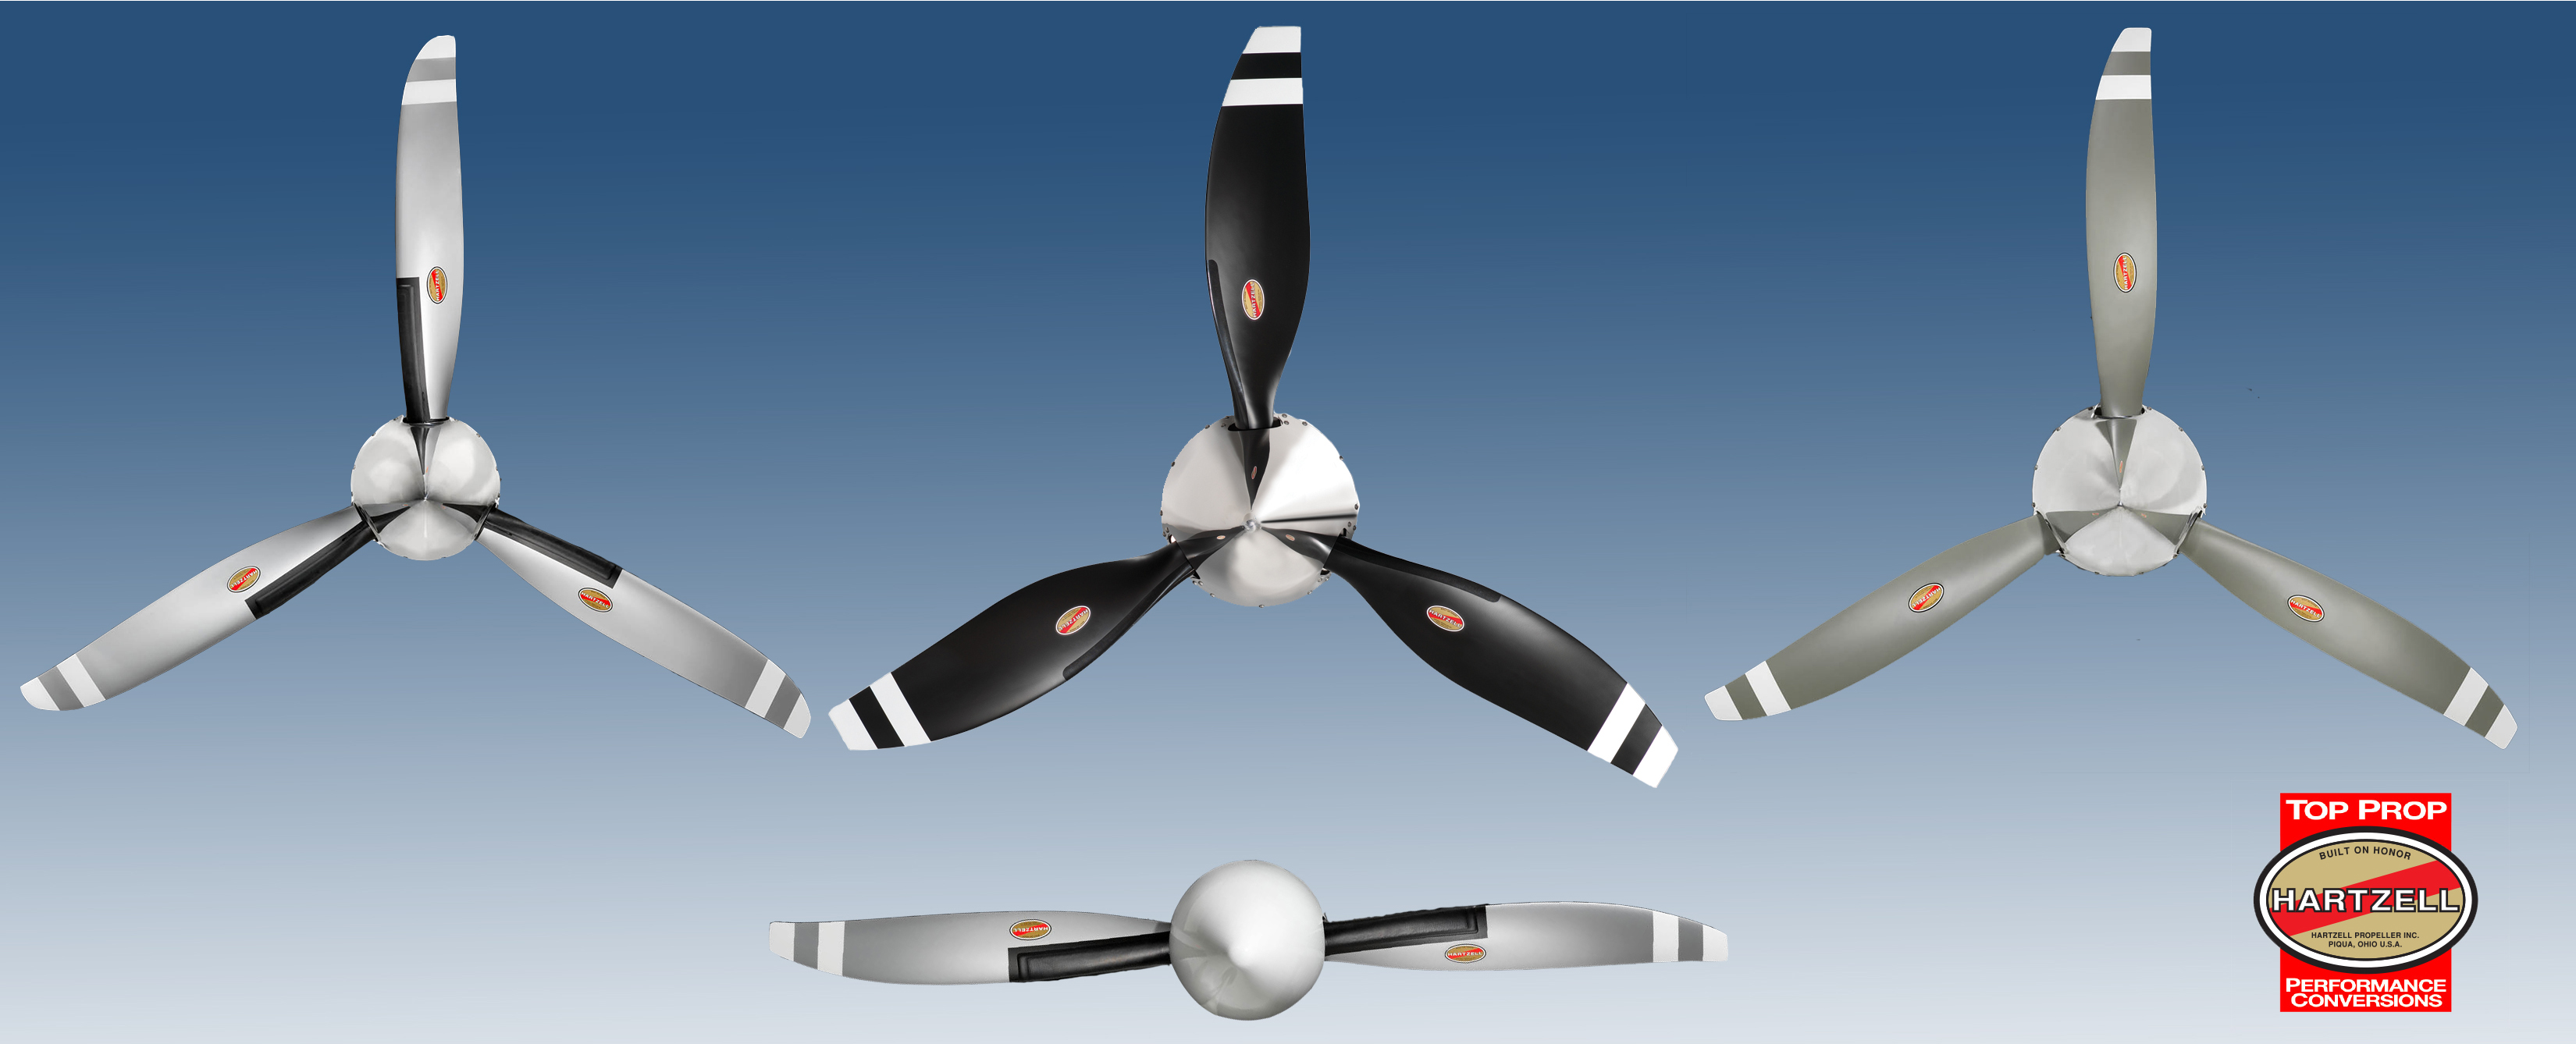 Constant Speed Propeller : Hartzell s top prop™ number ready to take the